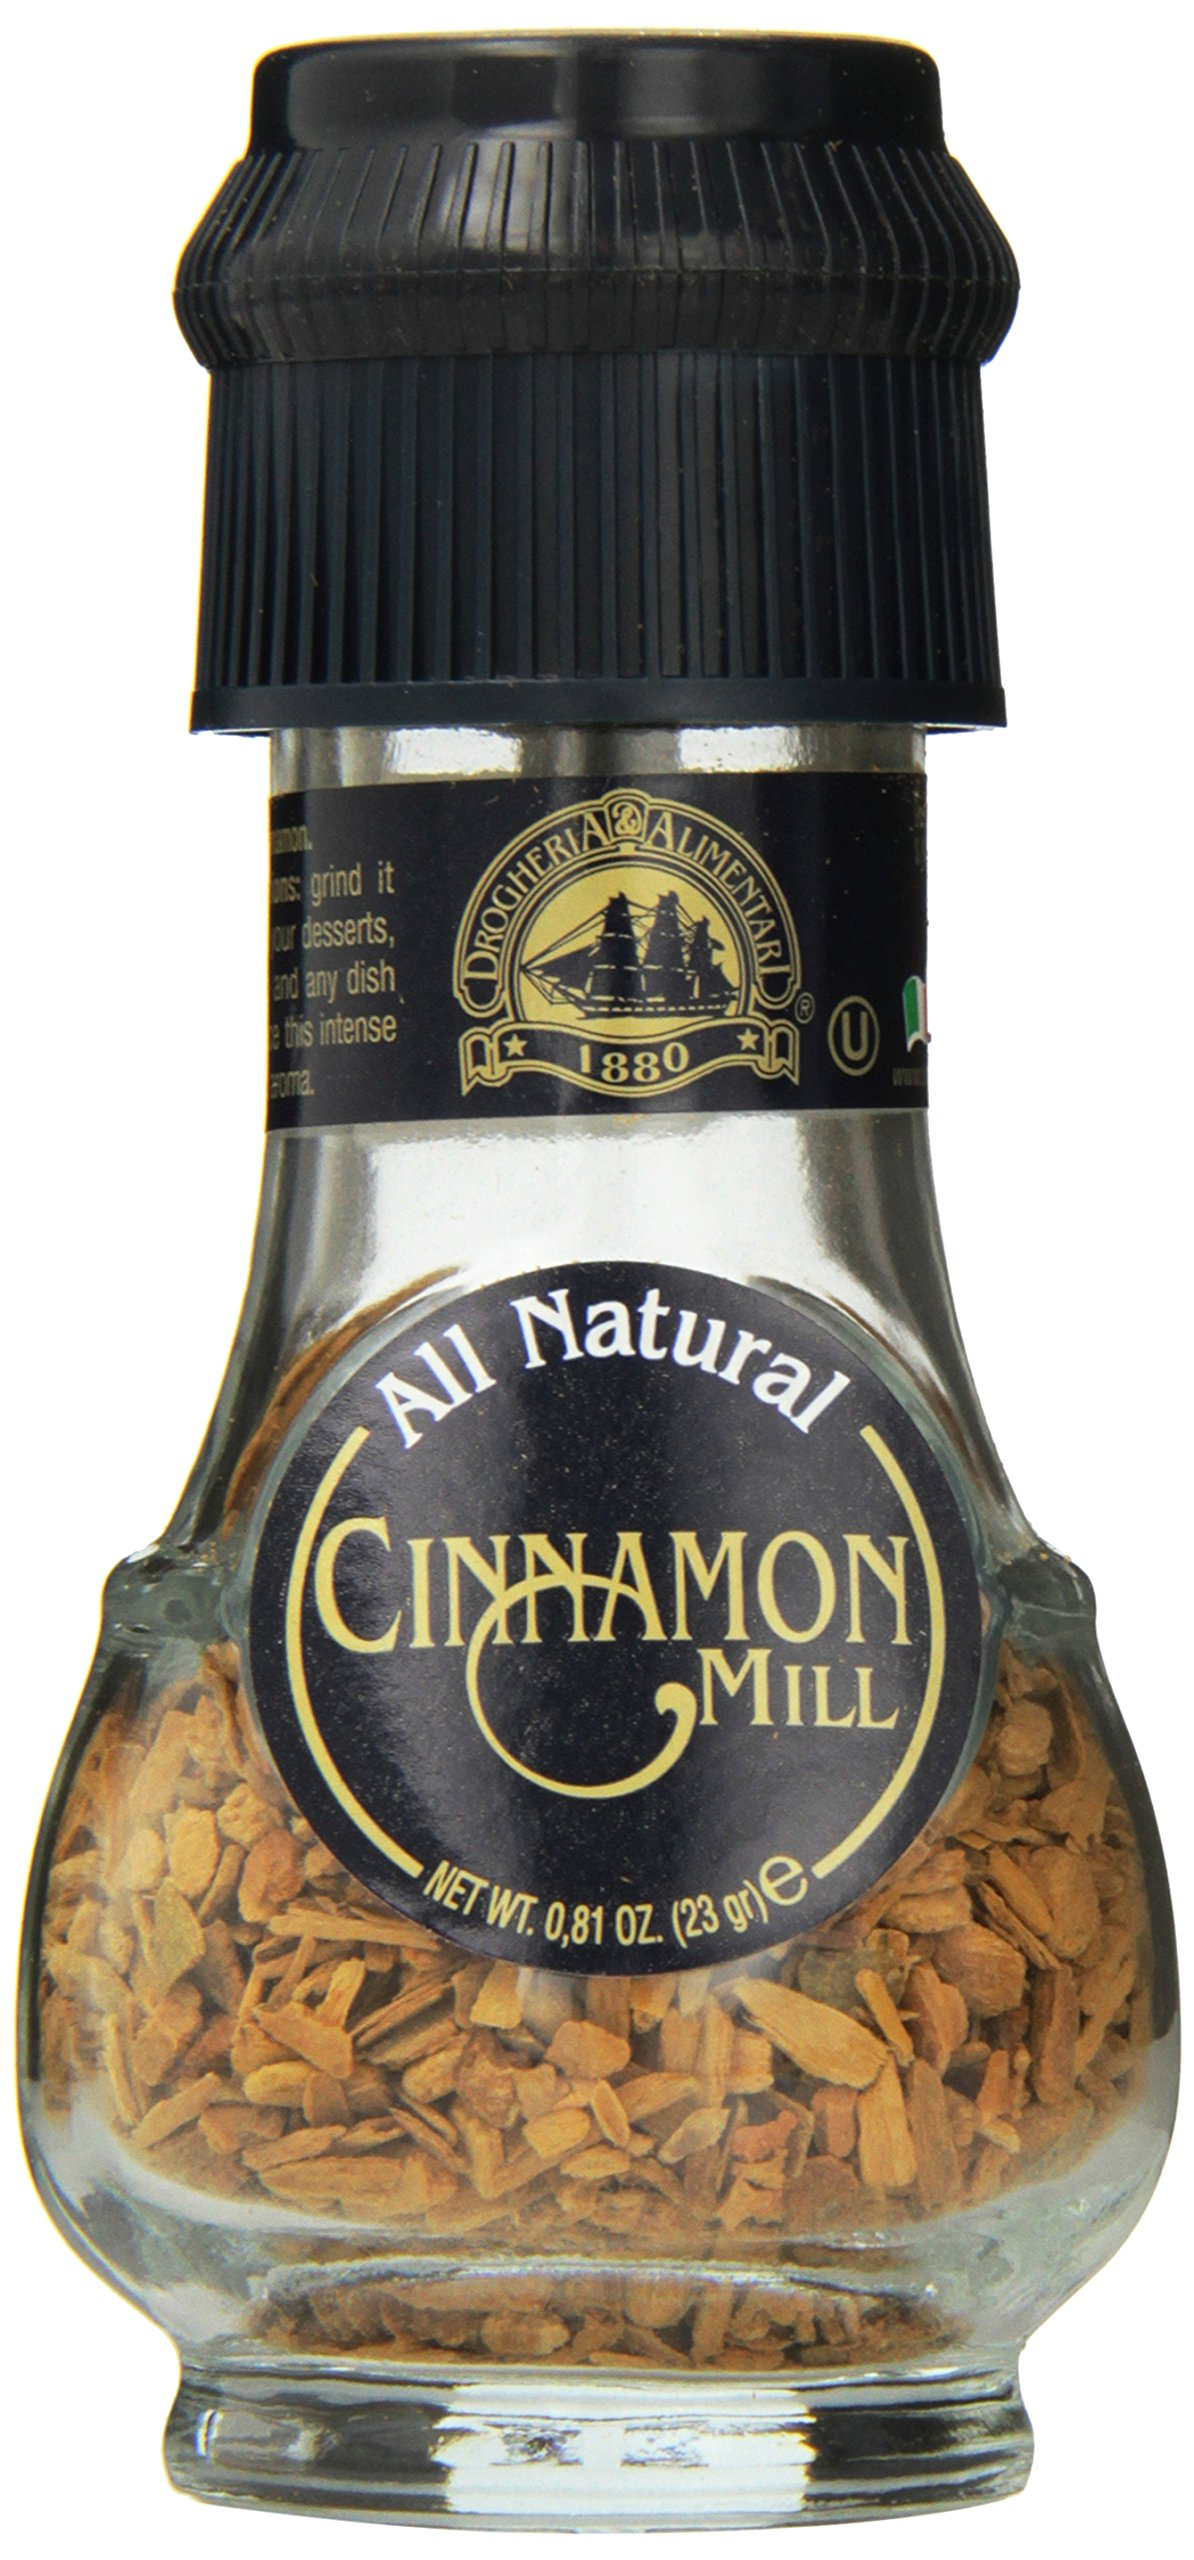 Drogheria & Alimentari All Natural Spice Grinder Cinnamon, 0.81 Ounce (Pack of 6)